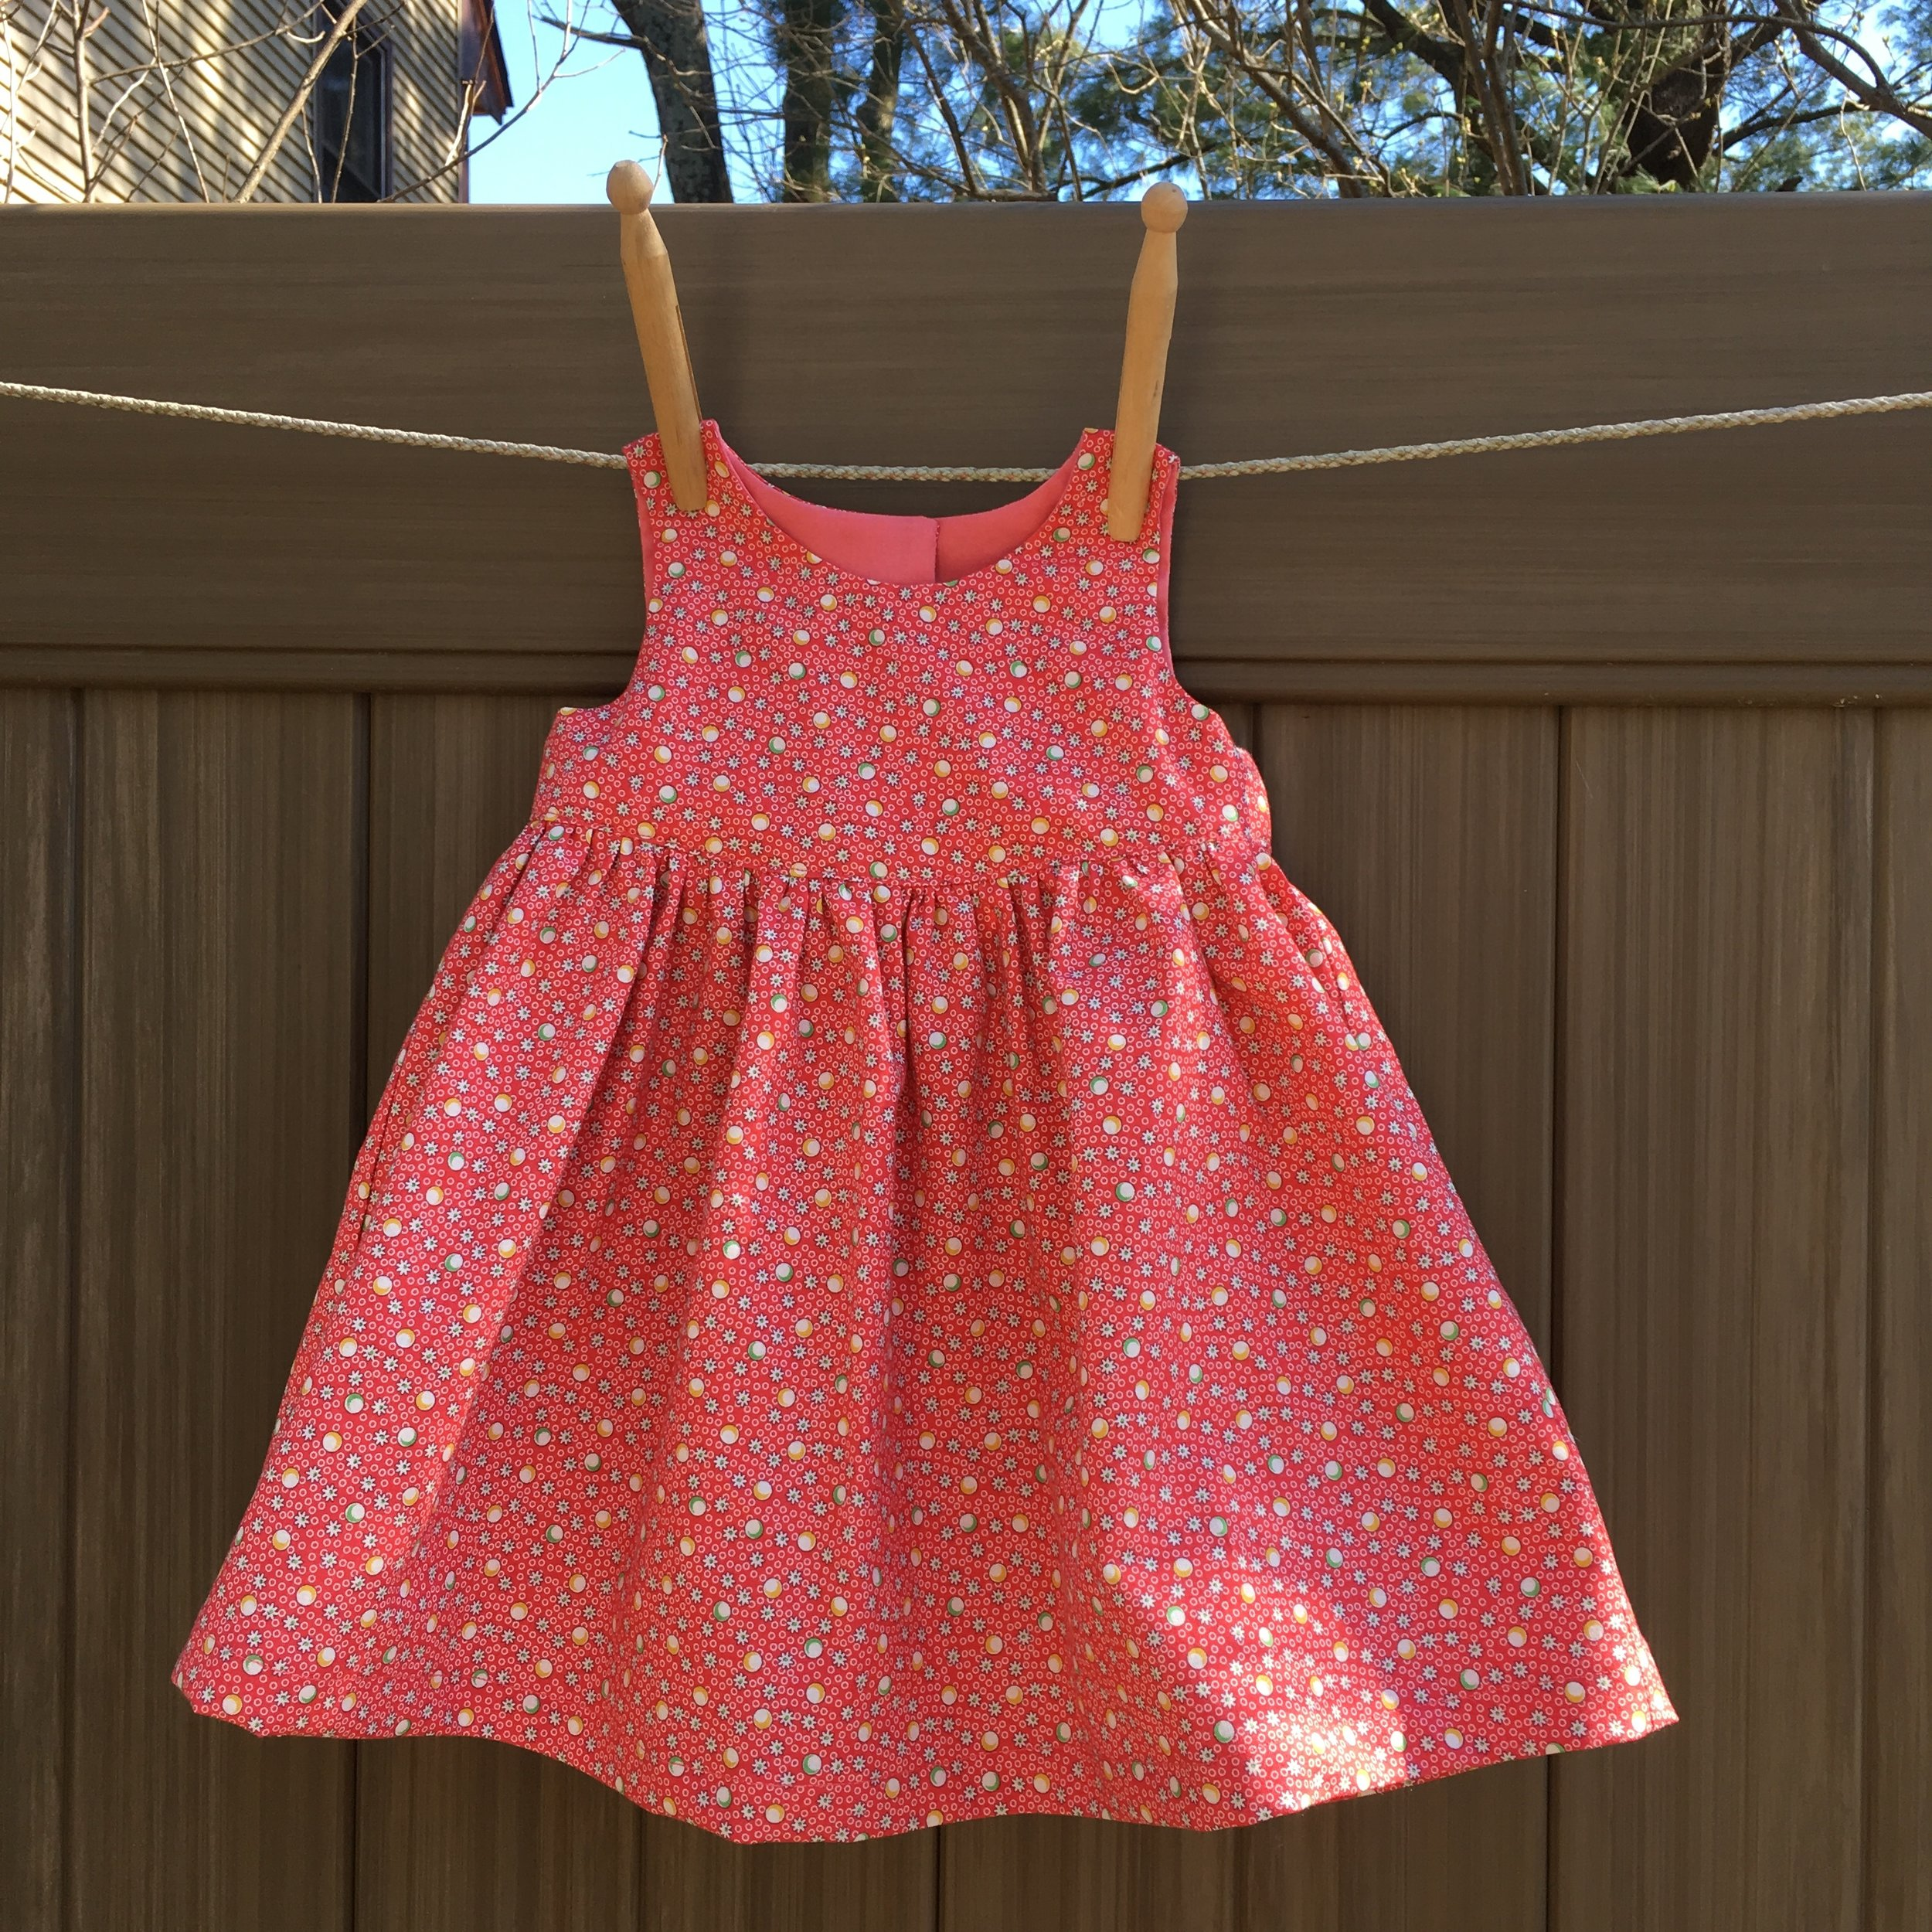 Baby Dress, Size Small (13-18 lbs), NEWLOOK 6568